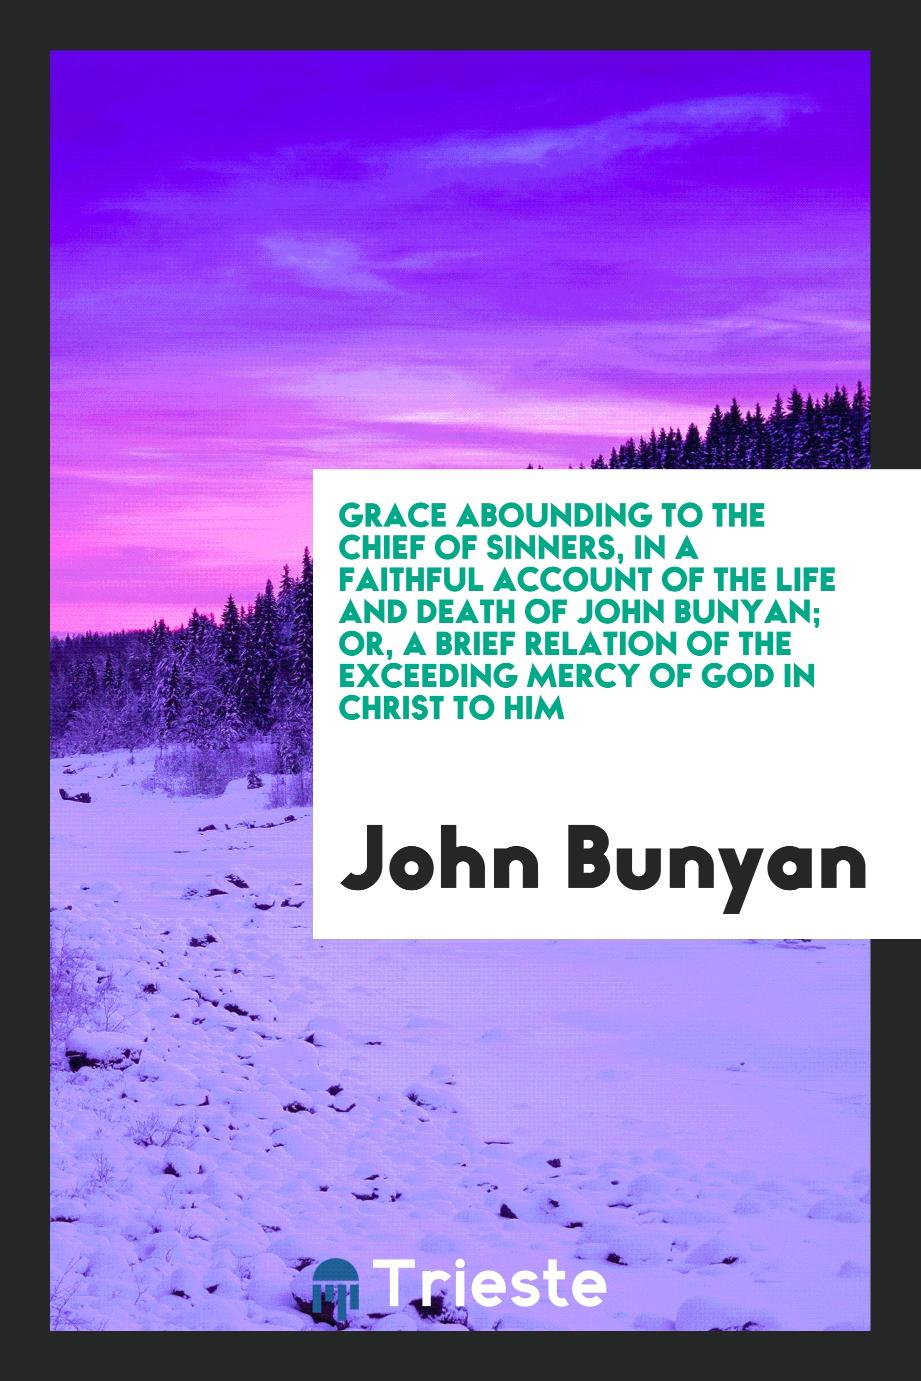 Grace abounding to the chief of sinners, in a faithful account of the life and death of John Bunyan; or, A brief relation of the exceeding mercy of God in Christ to him